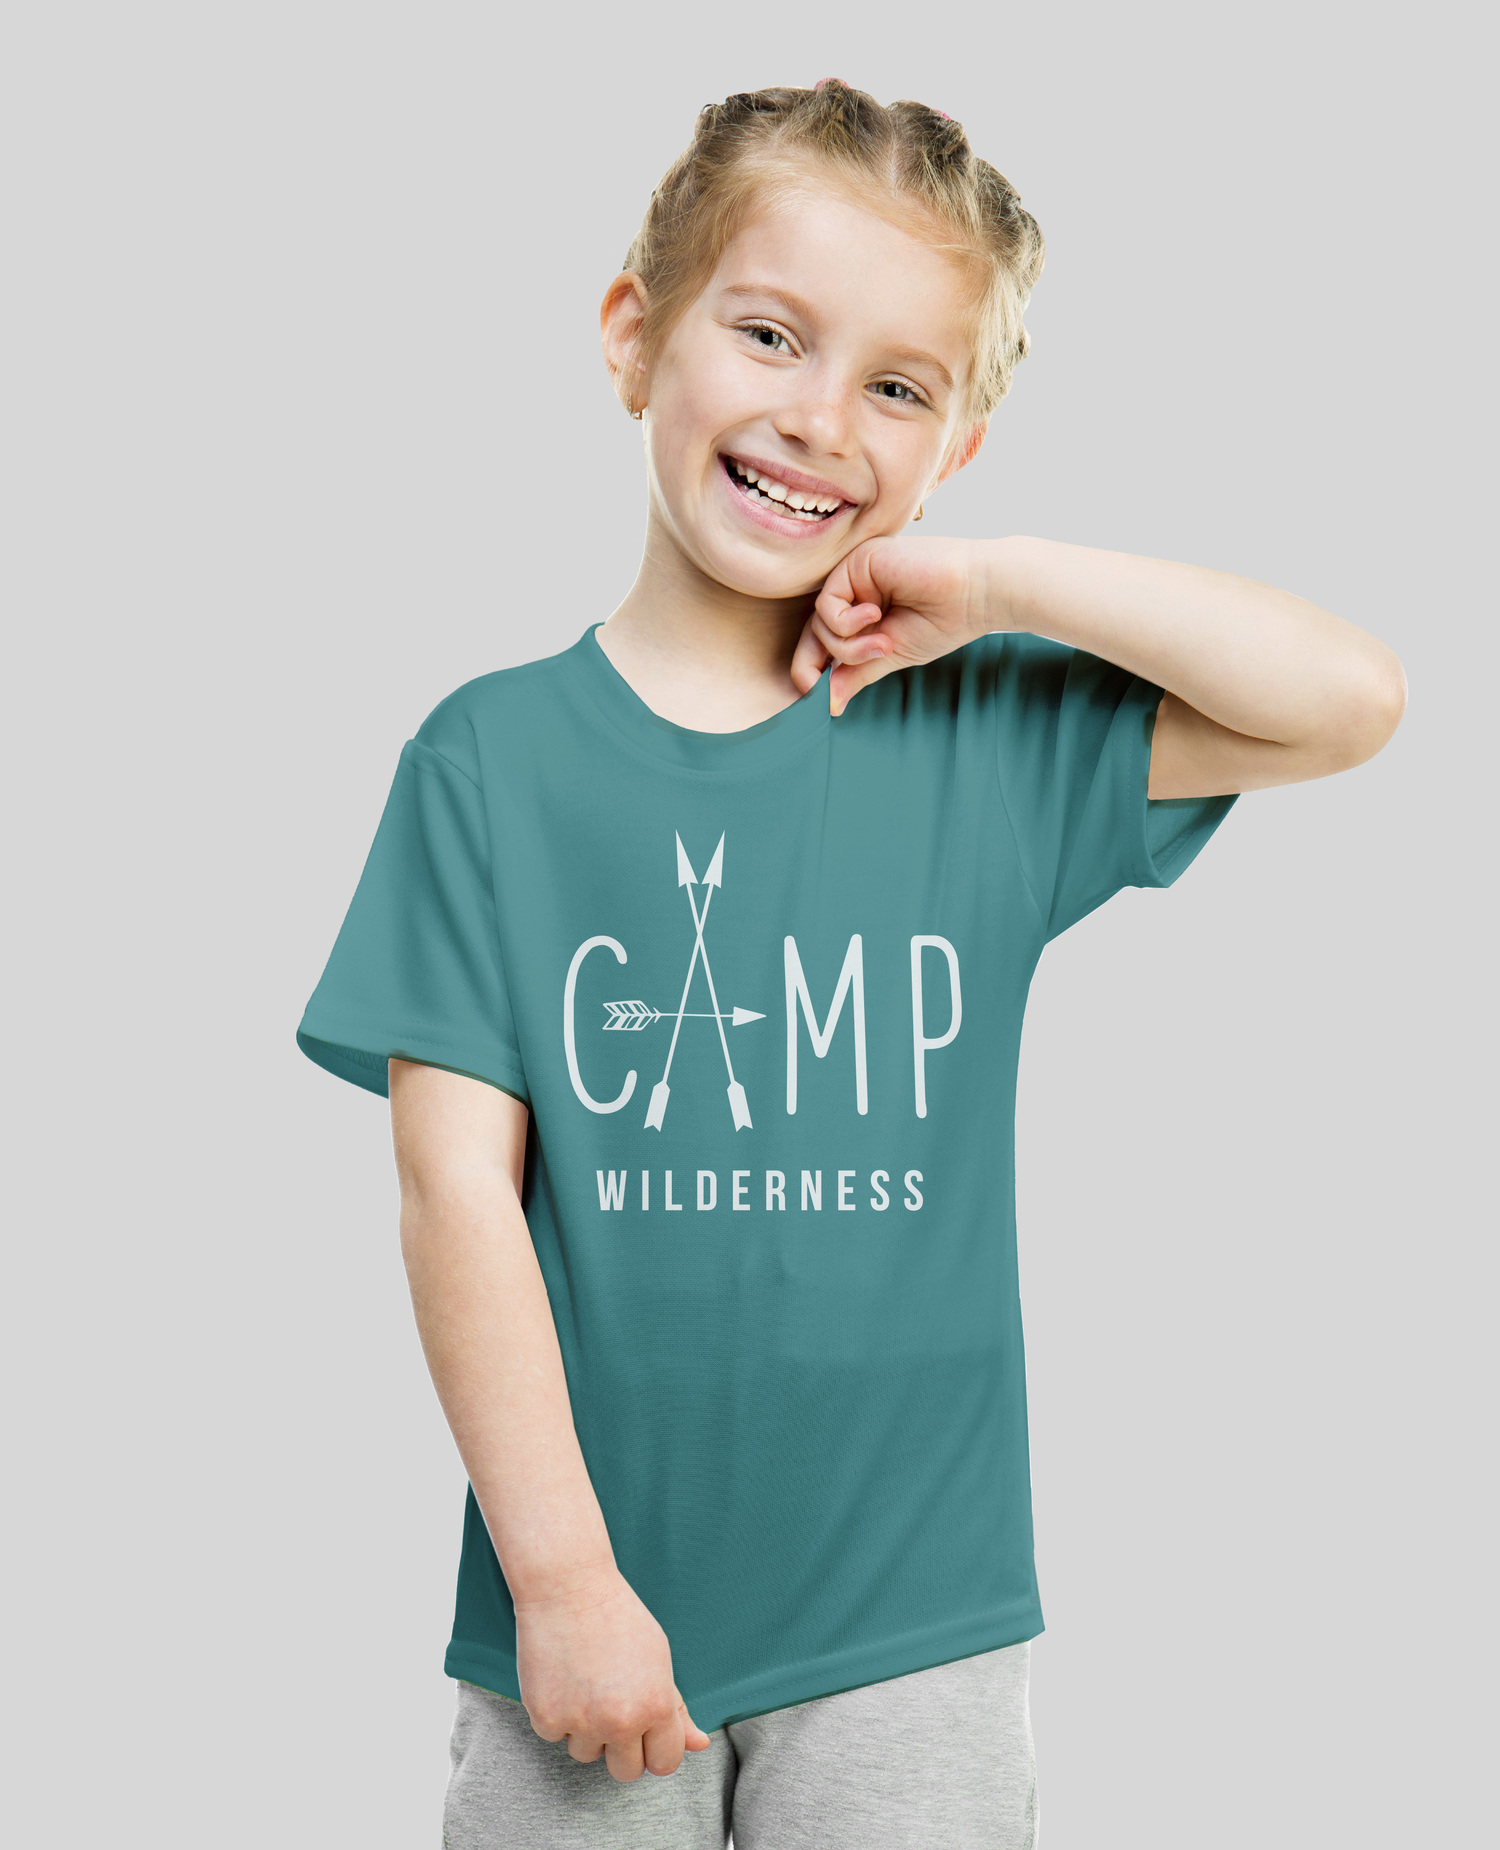 Camp Wilderness T-Shirt Design